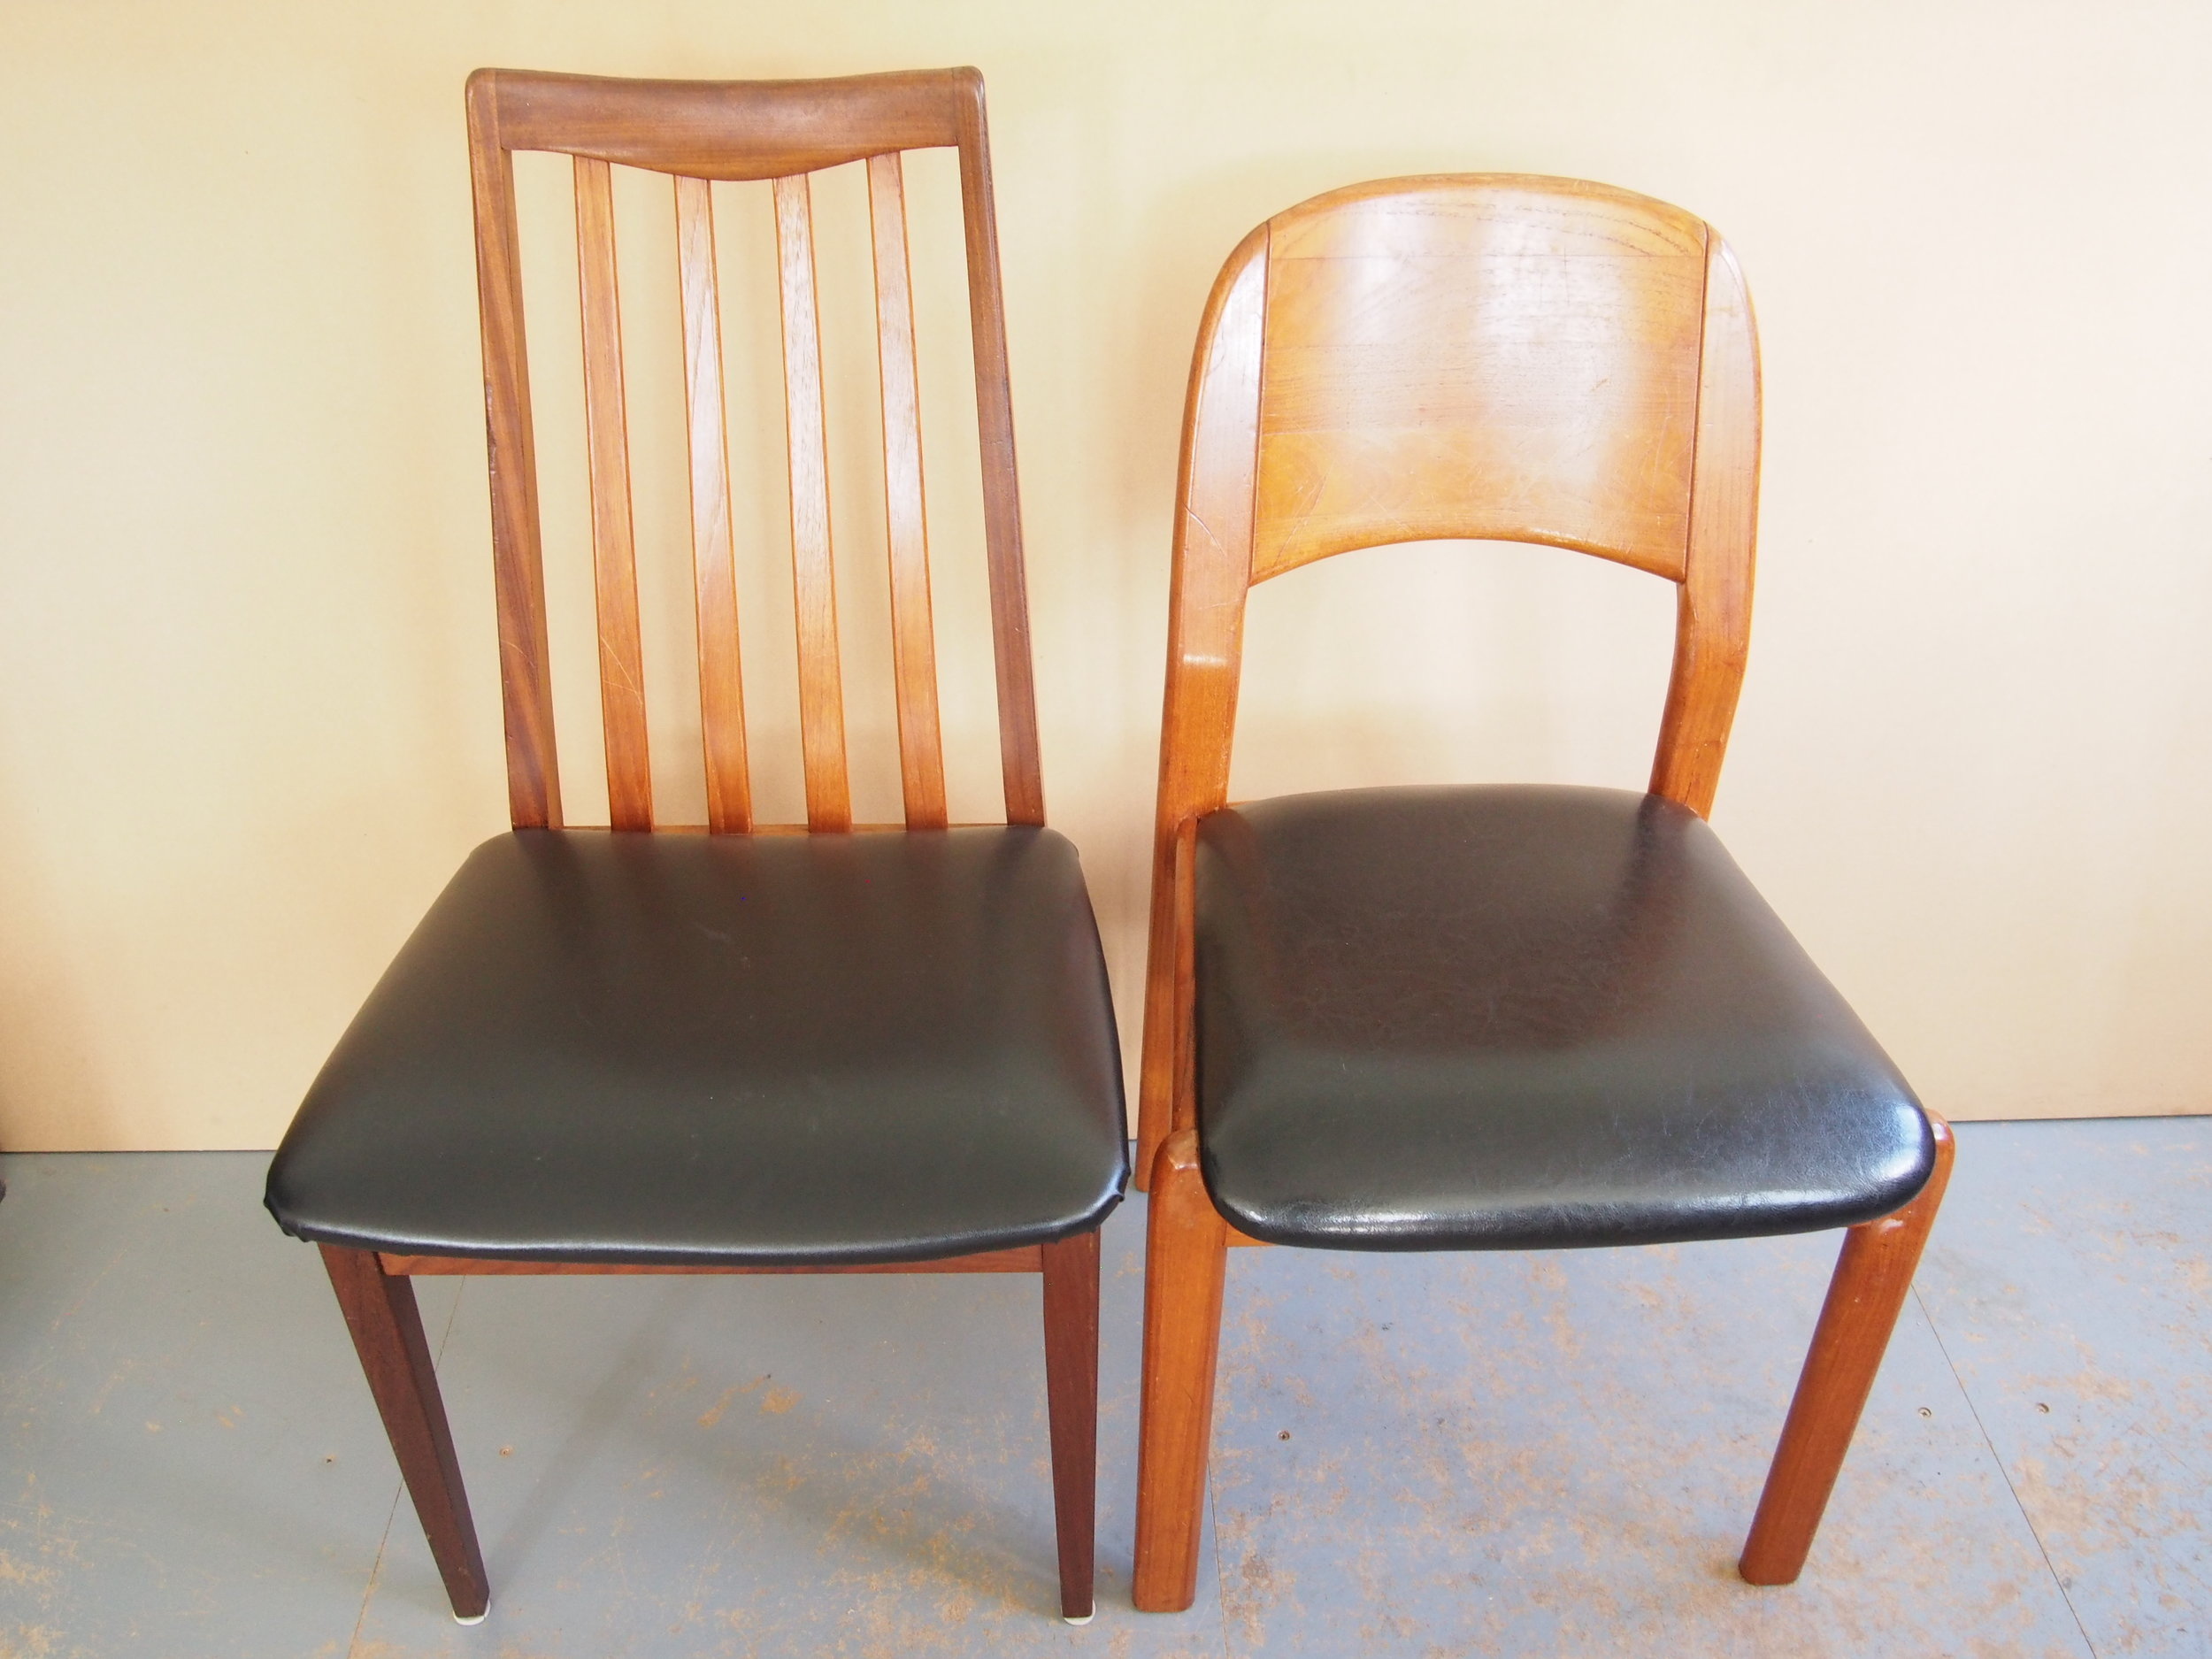 After Restoration of Cherry Wood Dining Chairs   Several broken joints were remade and re enforced for extra strength.